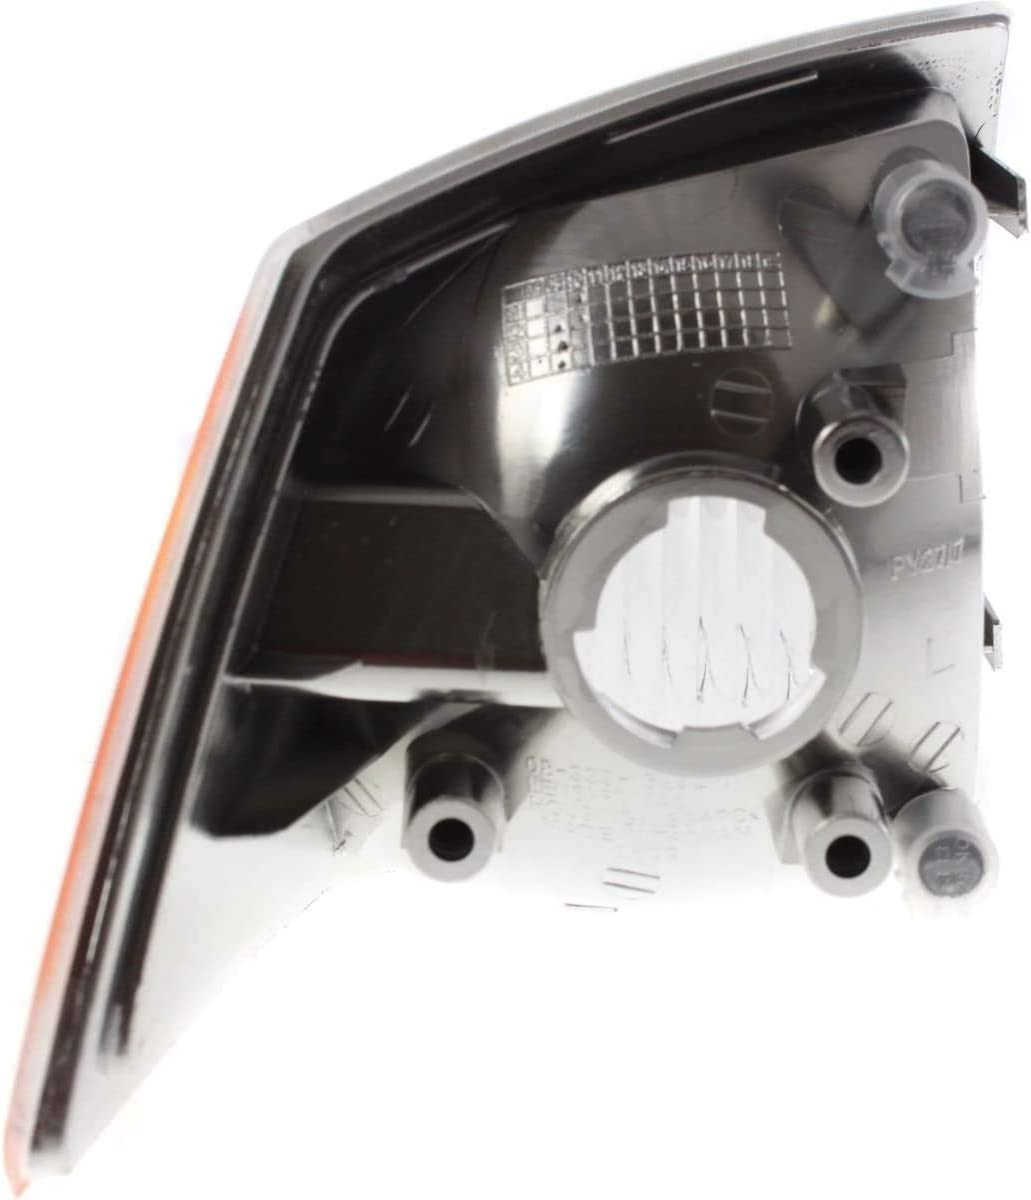 I-Match Auto Parts Driver Signal Parking Light Assembly Lens and Housing Replacement for 2007-2010 Jeep Compass MK CH2520144 68000683AB